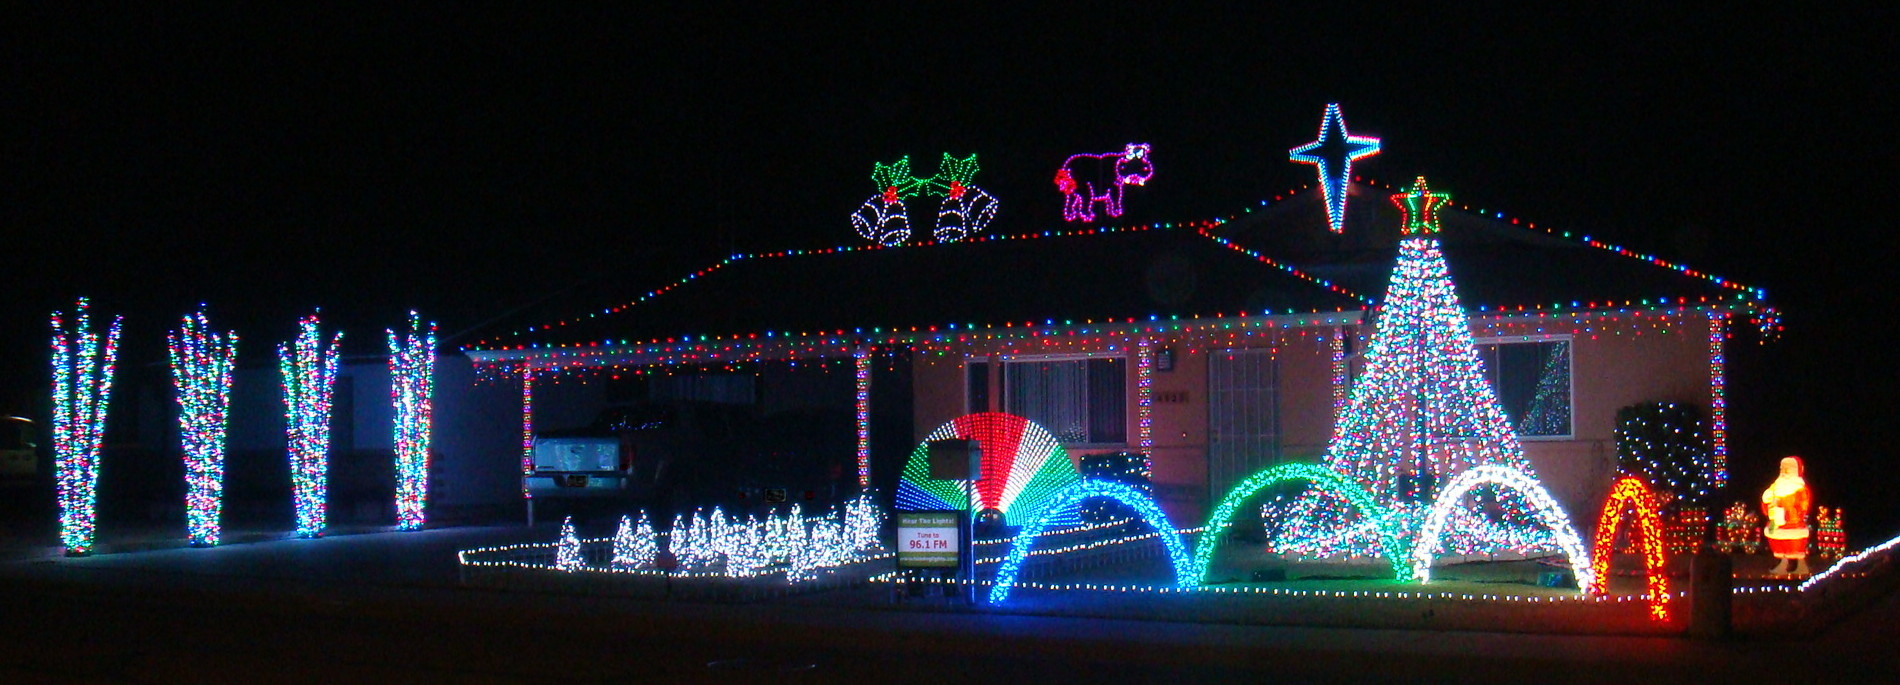 Christmas House Light Display Pictures Photos And Images For Facebook Tumblr Pinterest And Twitter